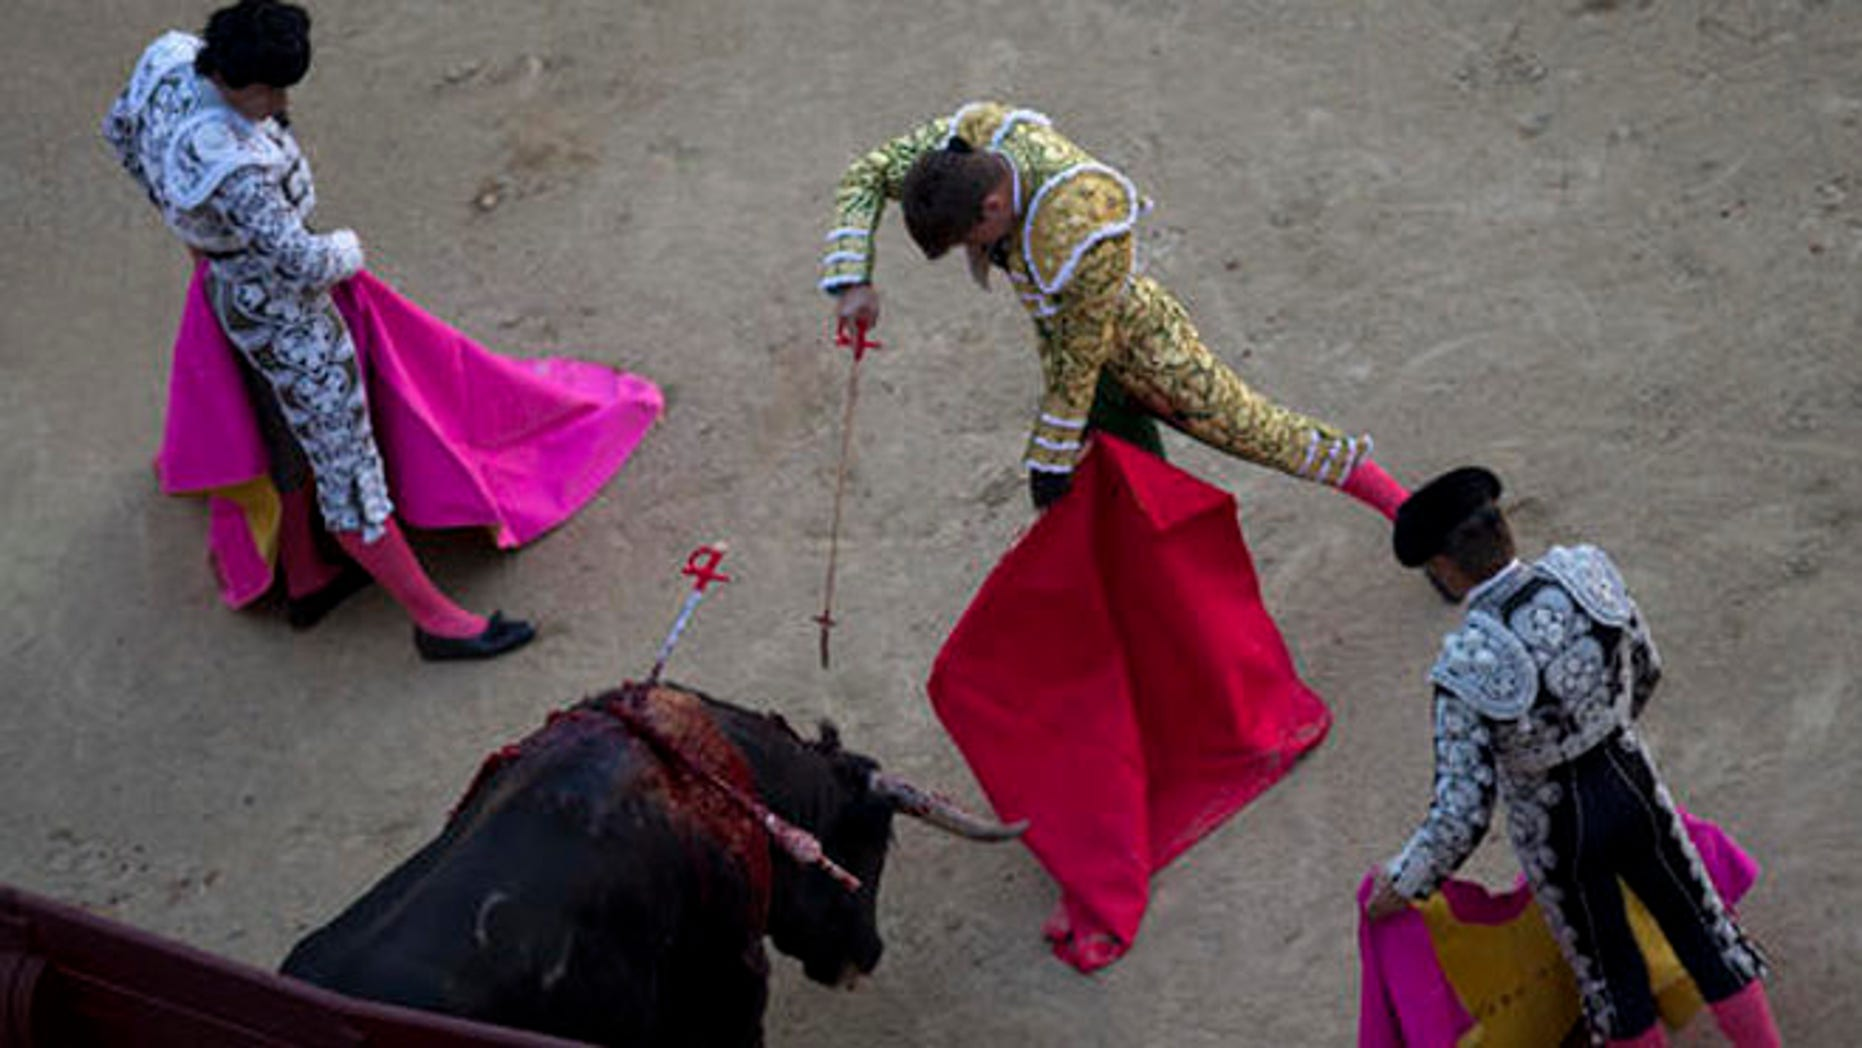 In this photo taken on Sunday, May 1, 2016, Spanish bullfighter Alvaro Garcia kills a Conde de Mayalde ranch's fighting bull during a bullfight at the Las Ventas bullring in Madrid, Spain. As matadors face half-ton bulls this month during Madrid's most important annual series of bullfights and Pamplona gears up for its chaotic July bull runs, tensions are building between anti-bullfighting forces and the traditions' defenders. (AP Photo/Francisco Seco)